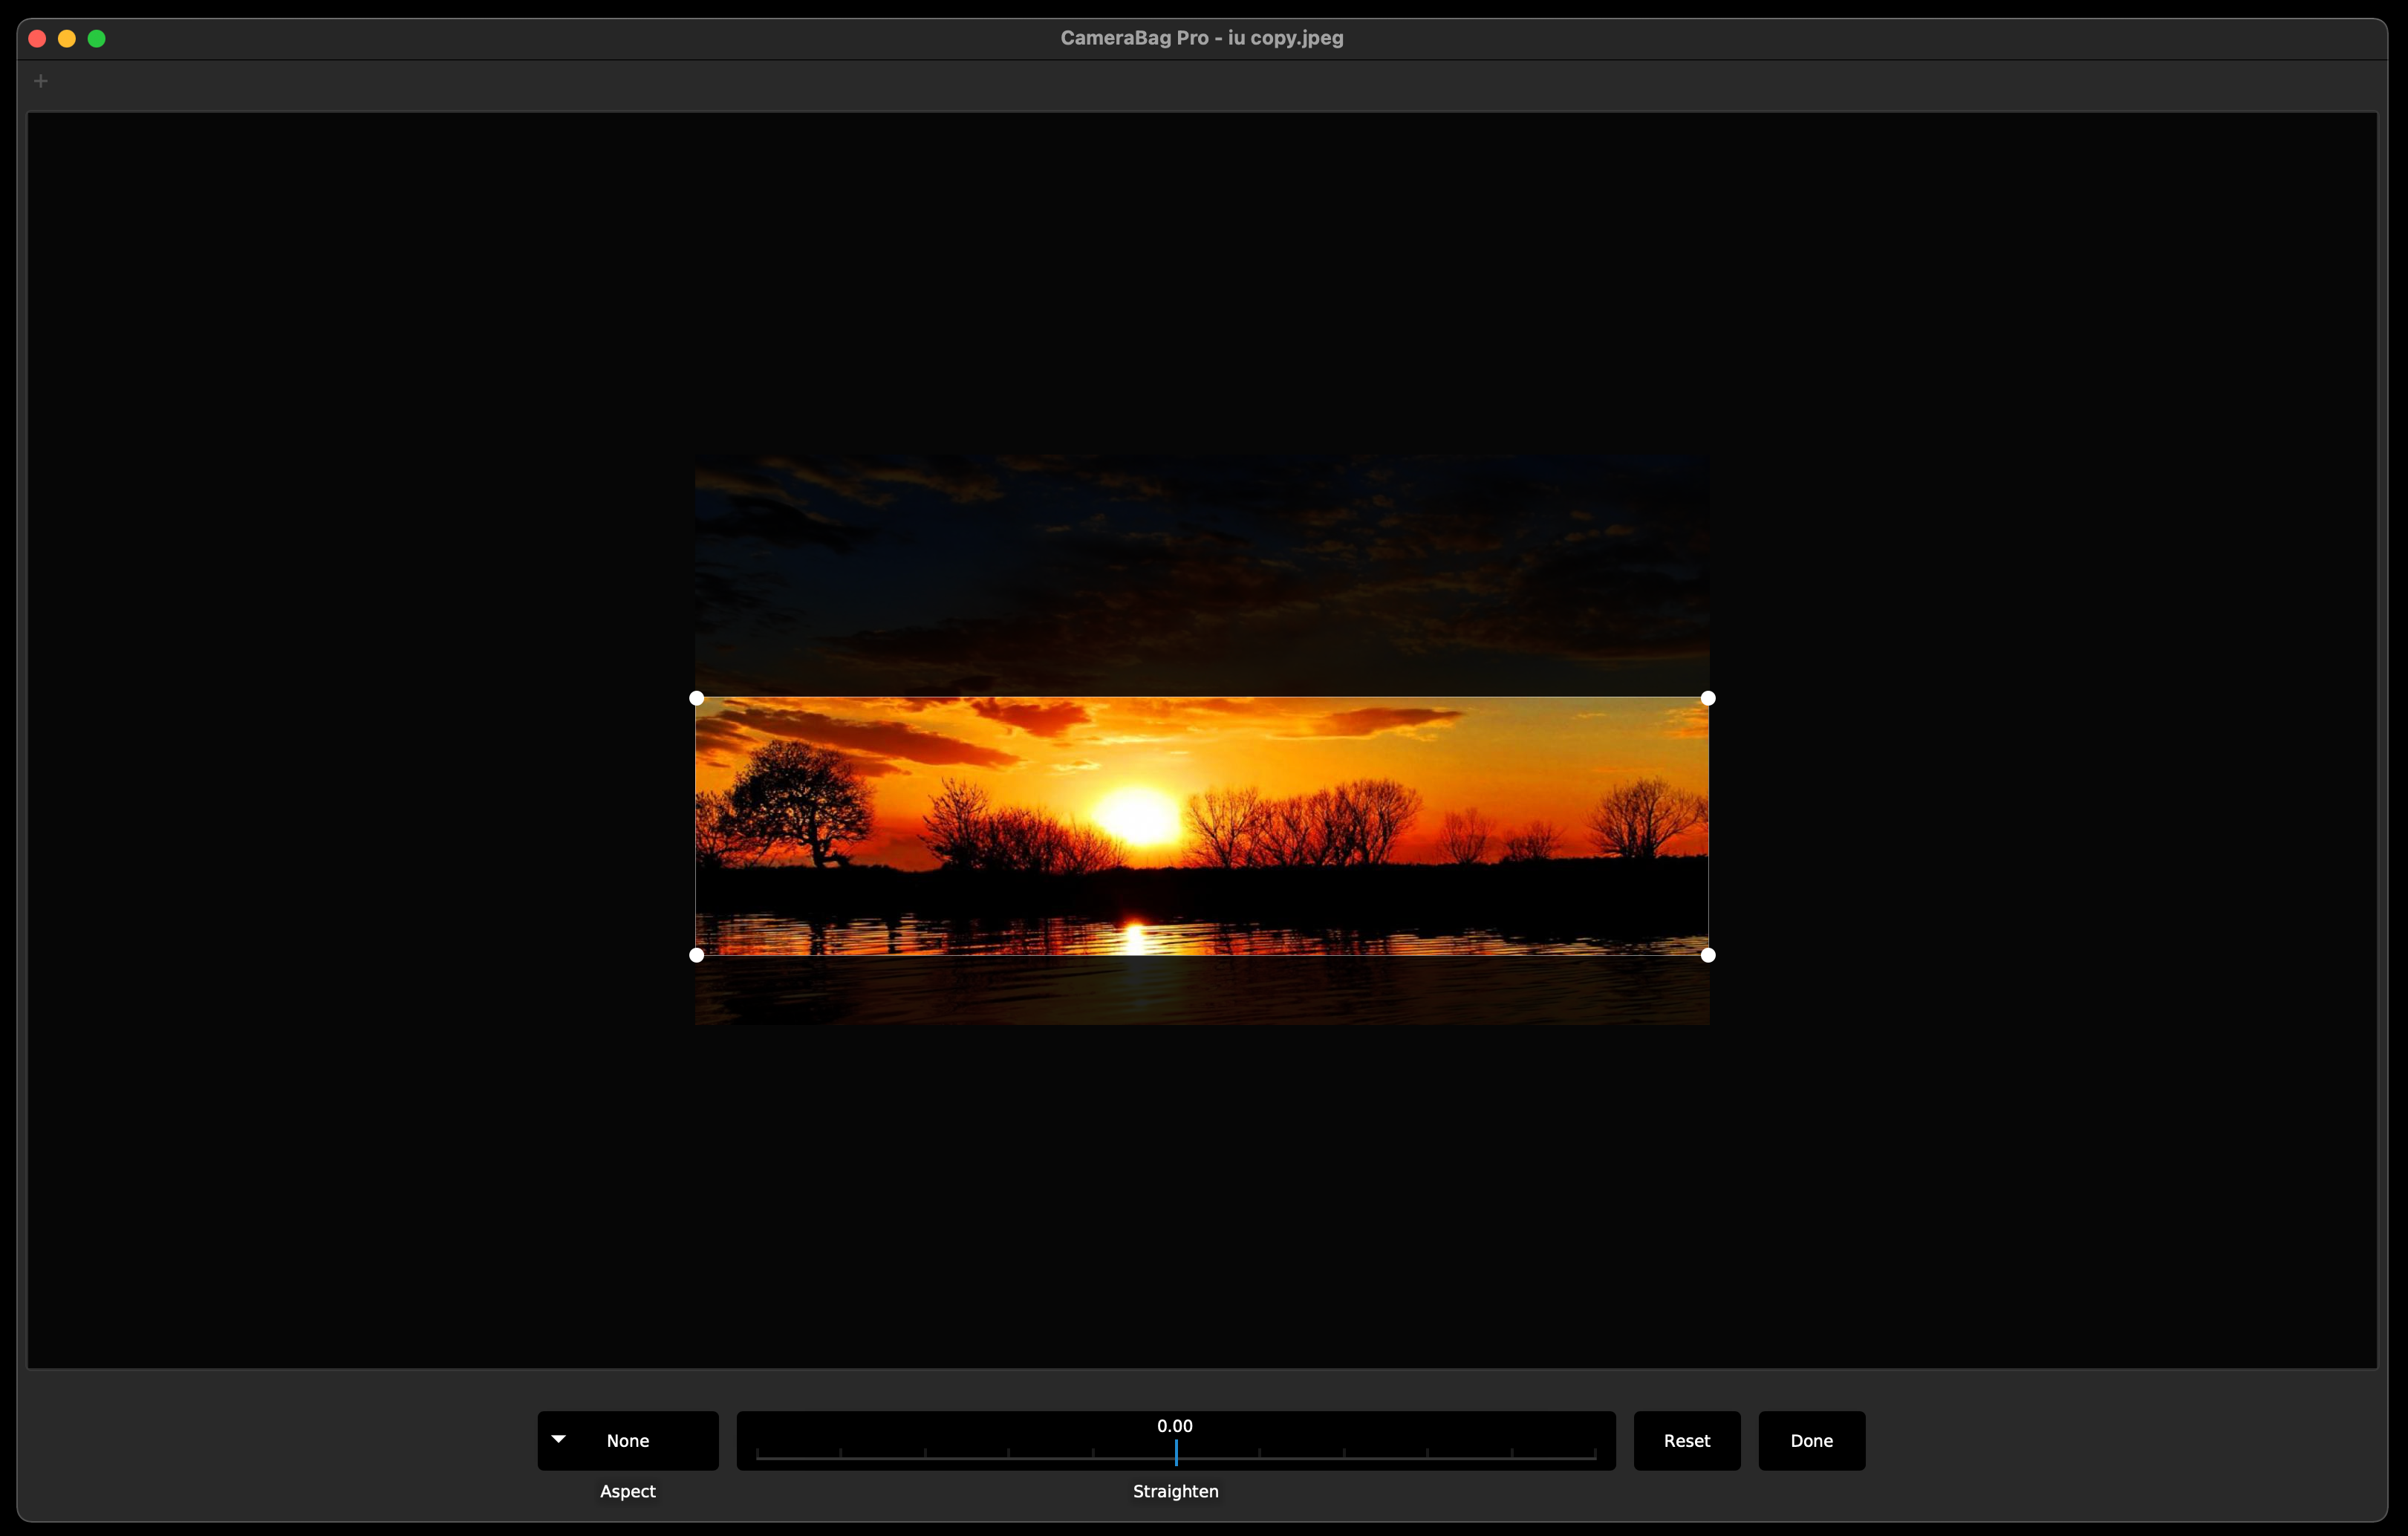 how to crop image with camerabag